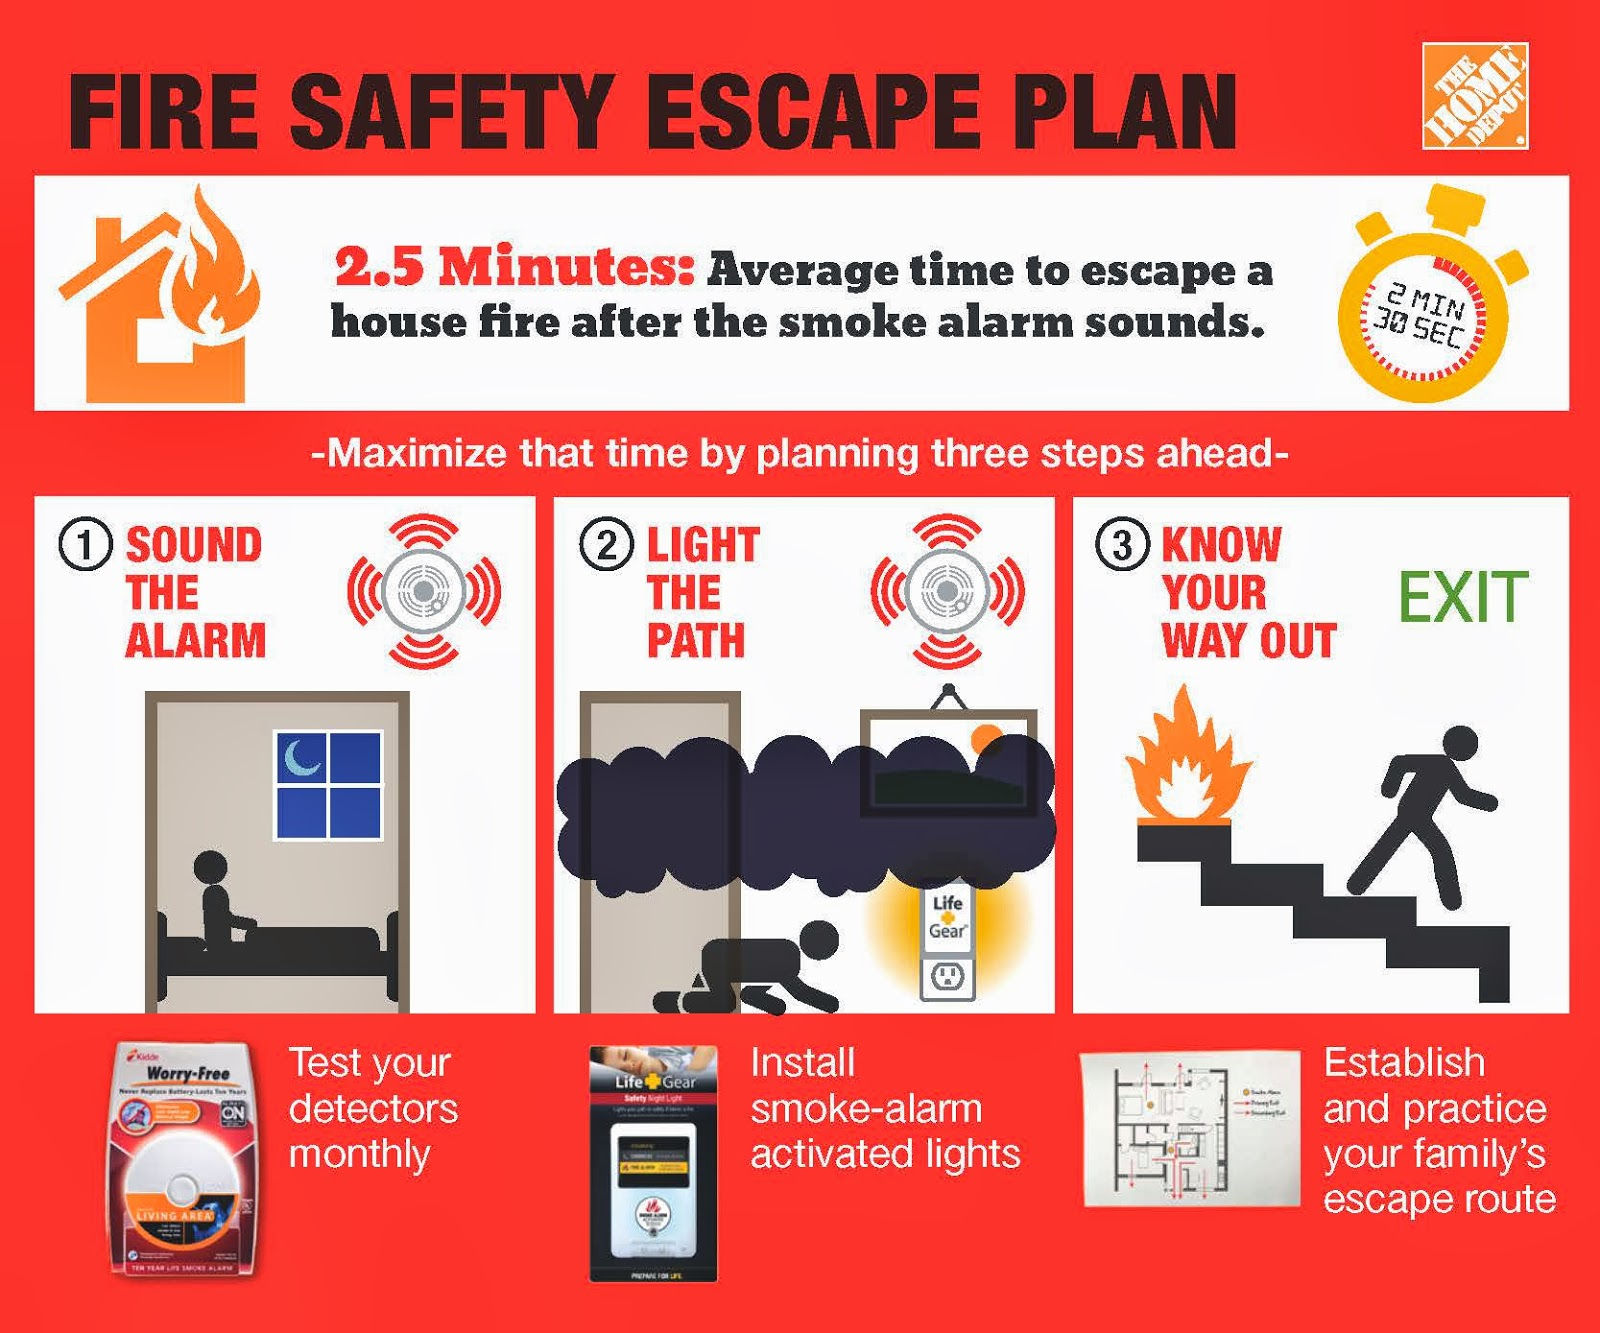 Fire safety flyer solidique27 life with 4 boys stay safe with fire safety tips from the home maxwellsz